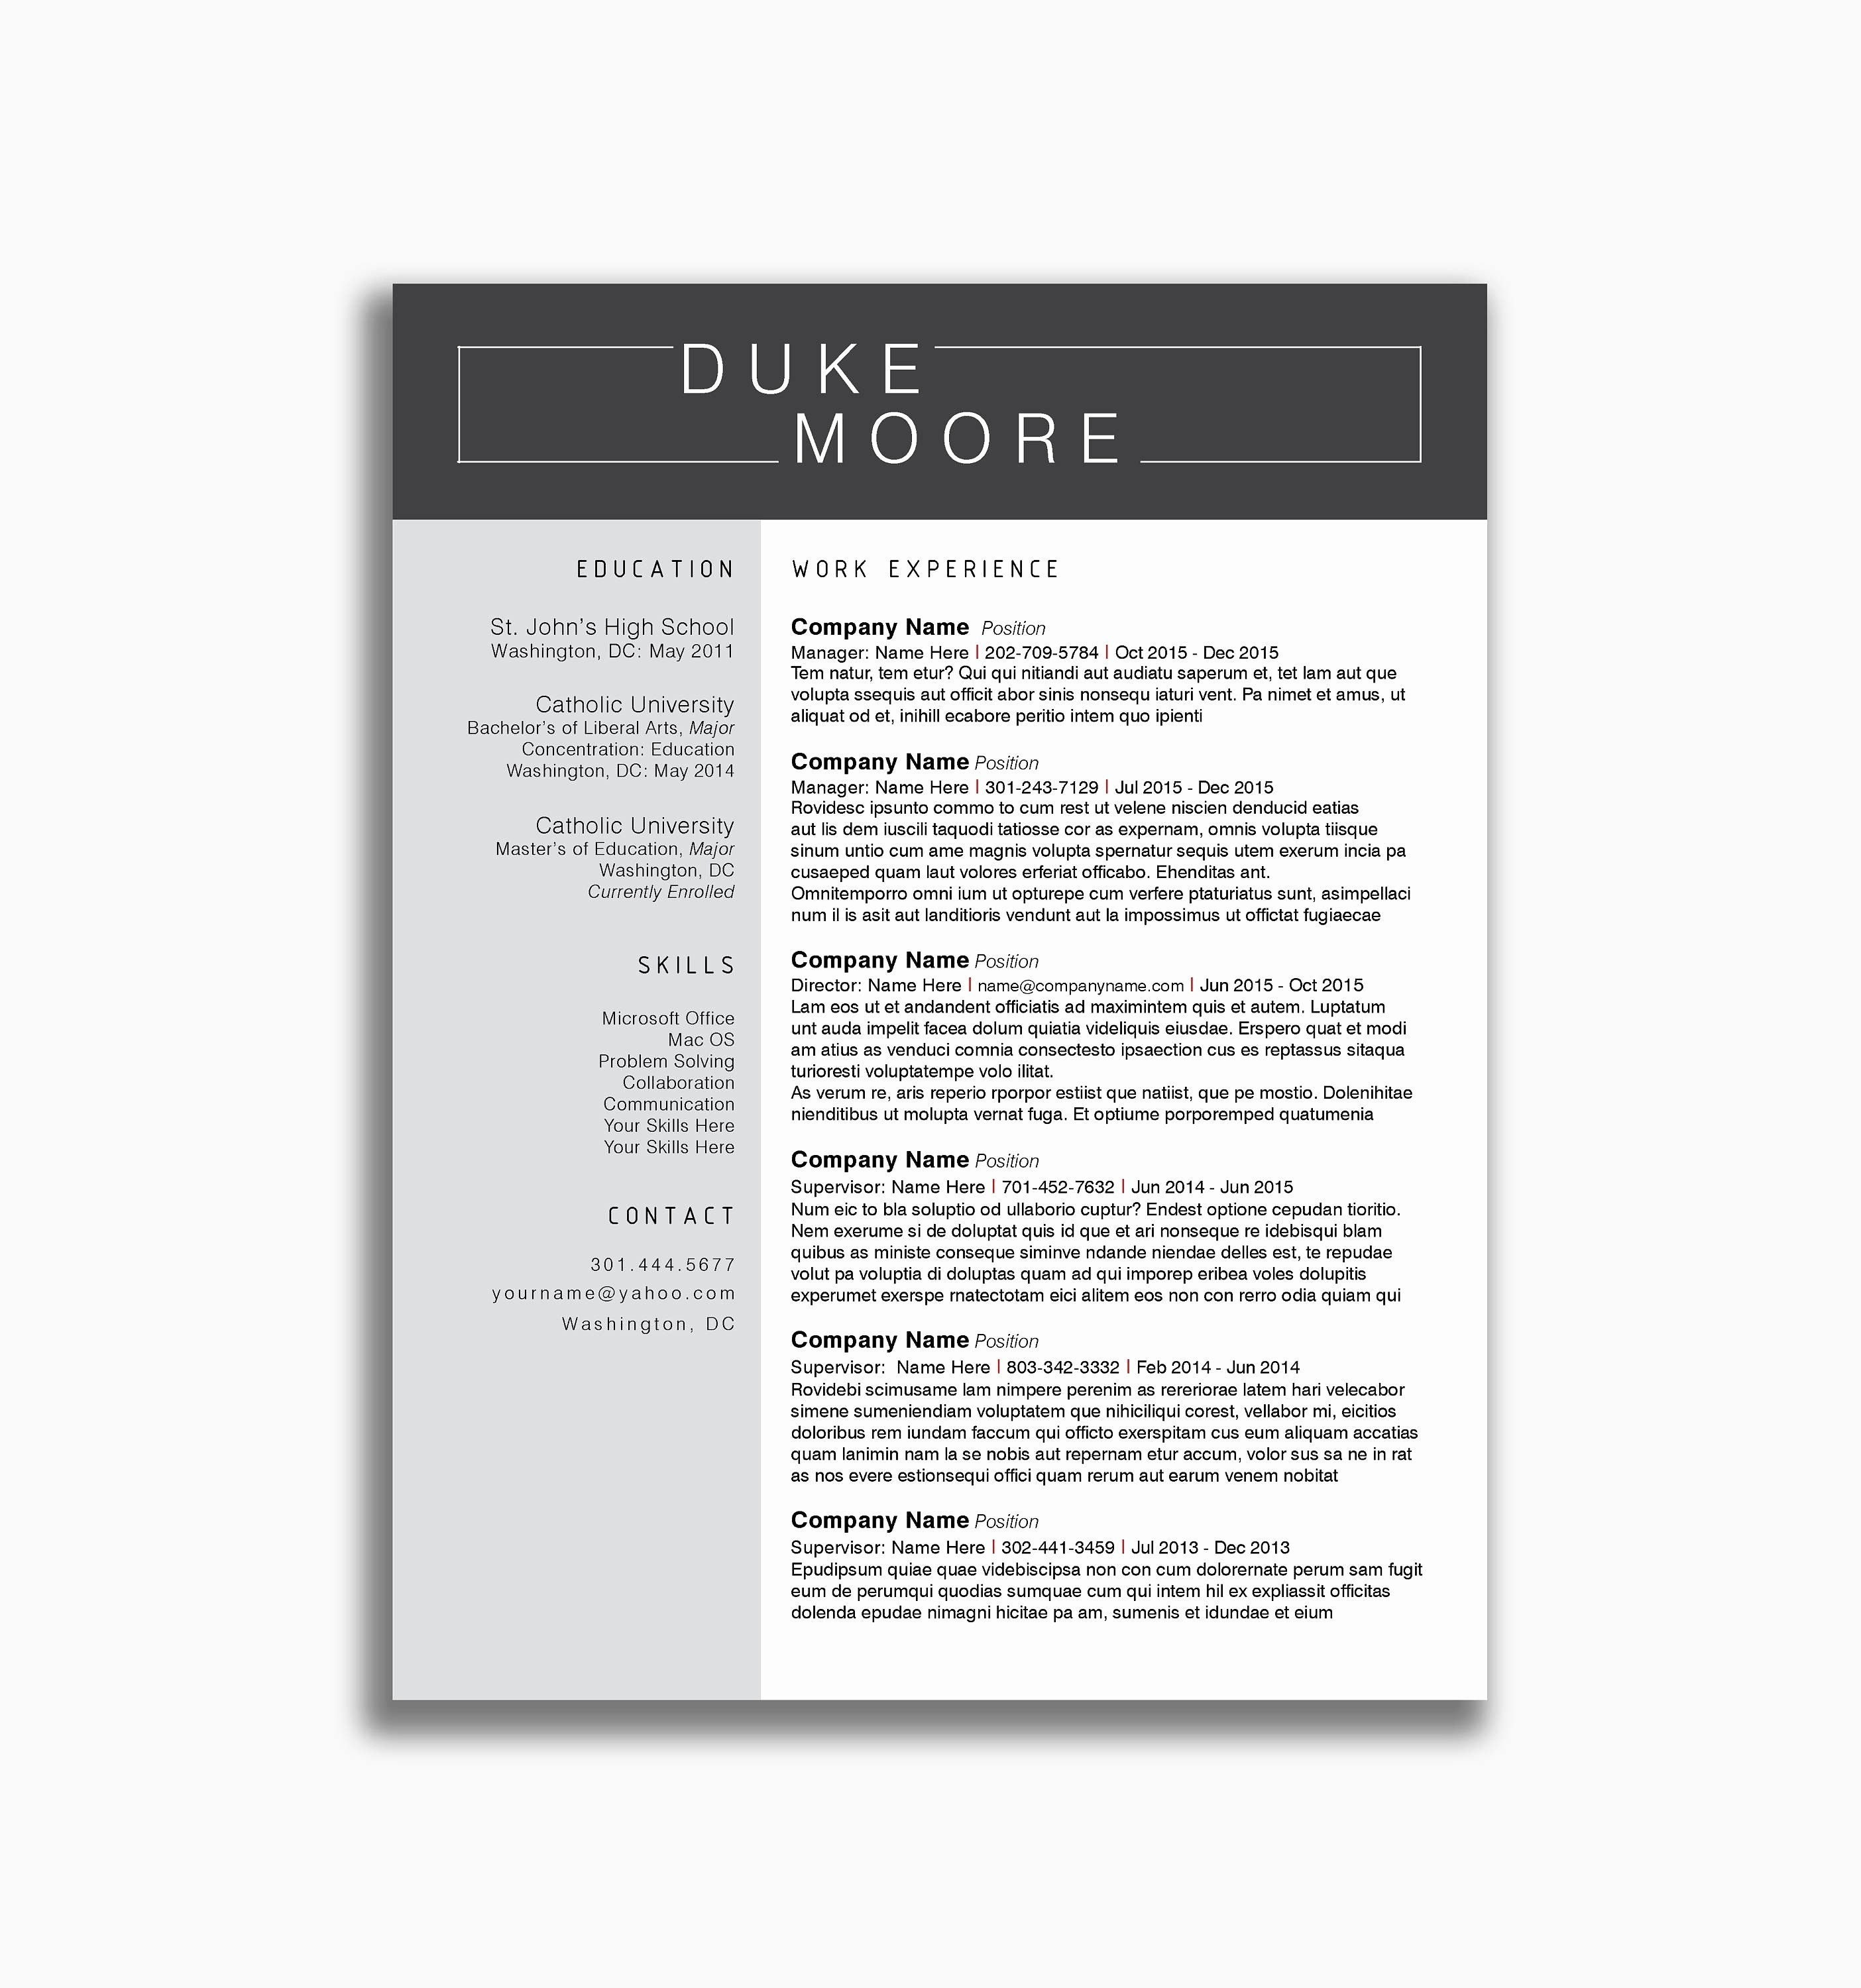 Good Self Descriptive Words for Resume - Mon App Resume Beautiful Descriptive Words for Resume Unique 44